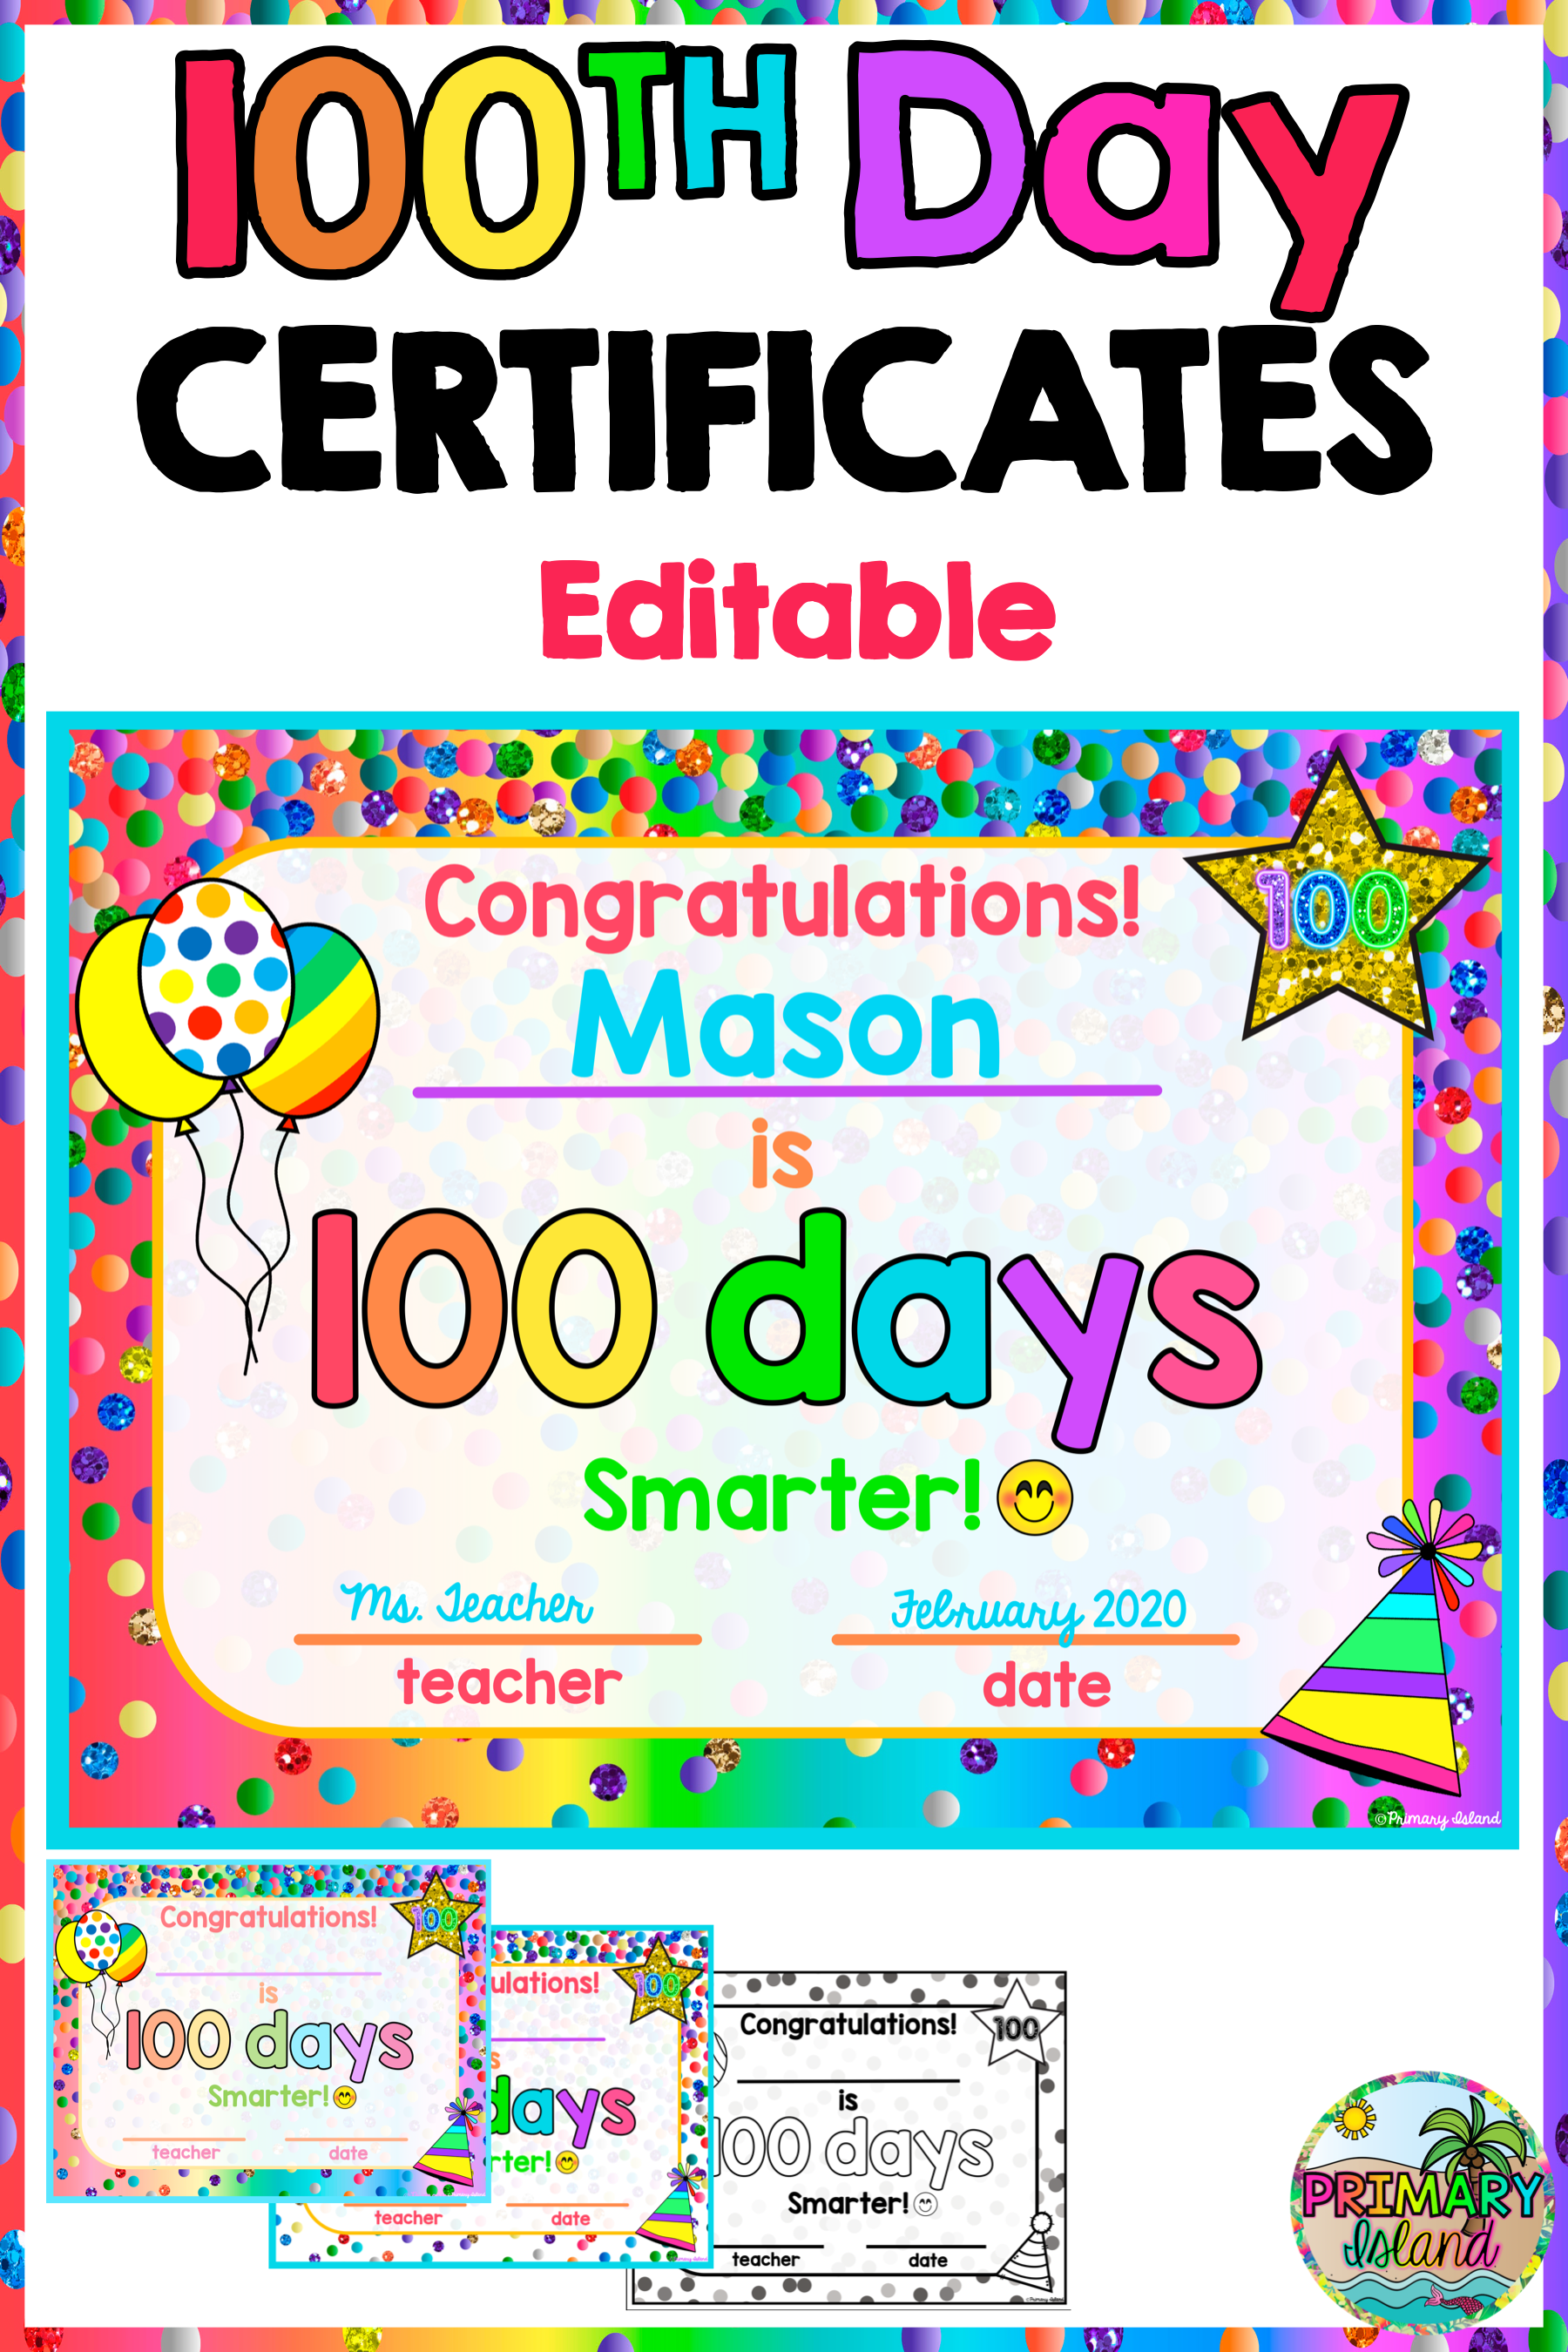 100th Day Of School Certificates School Certificates 100 Days Of School 100th Day